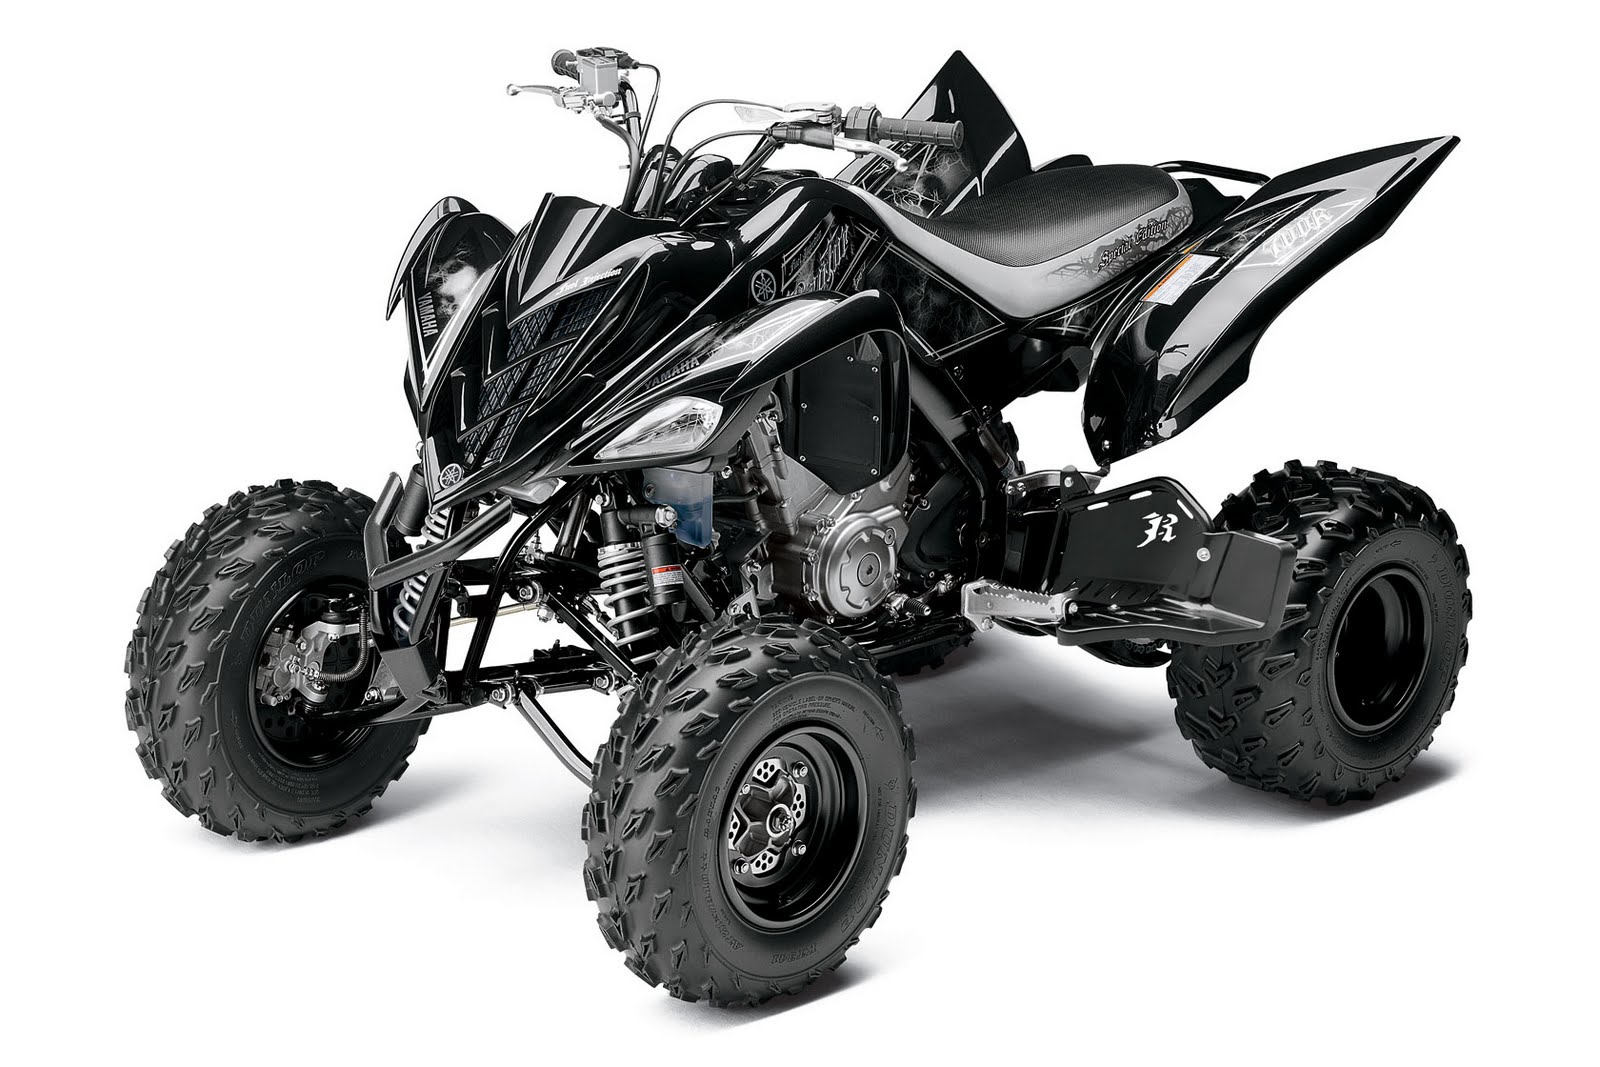 yamaha atv. news; related; galery yamaha atv